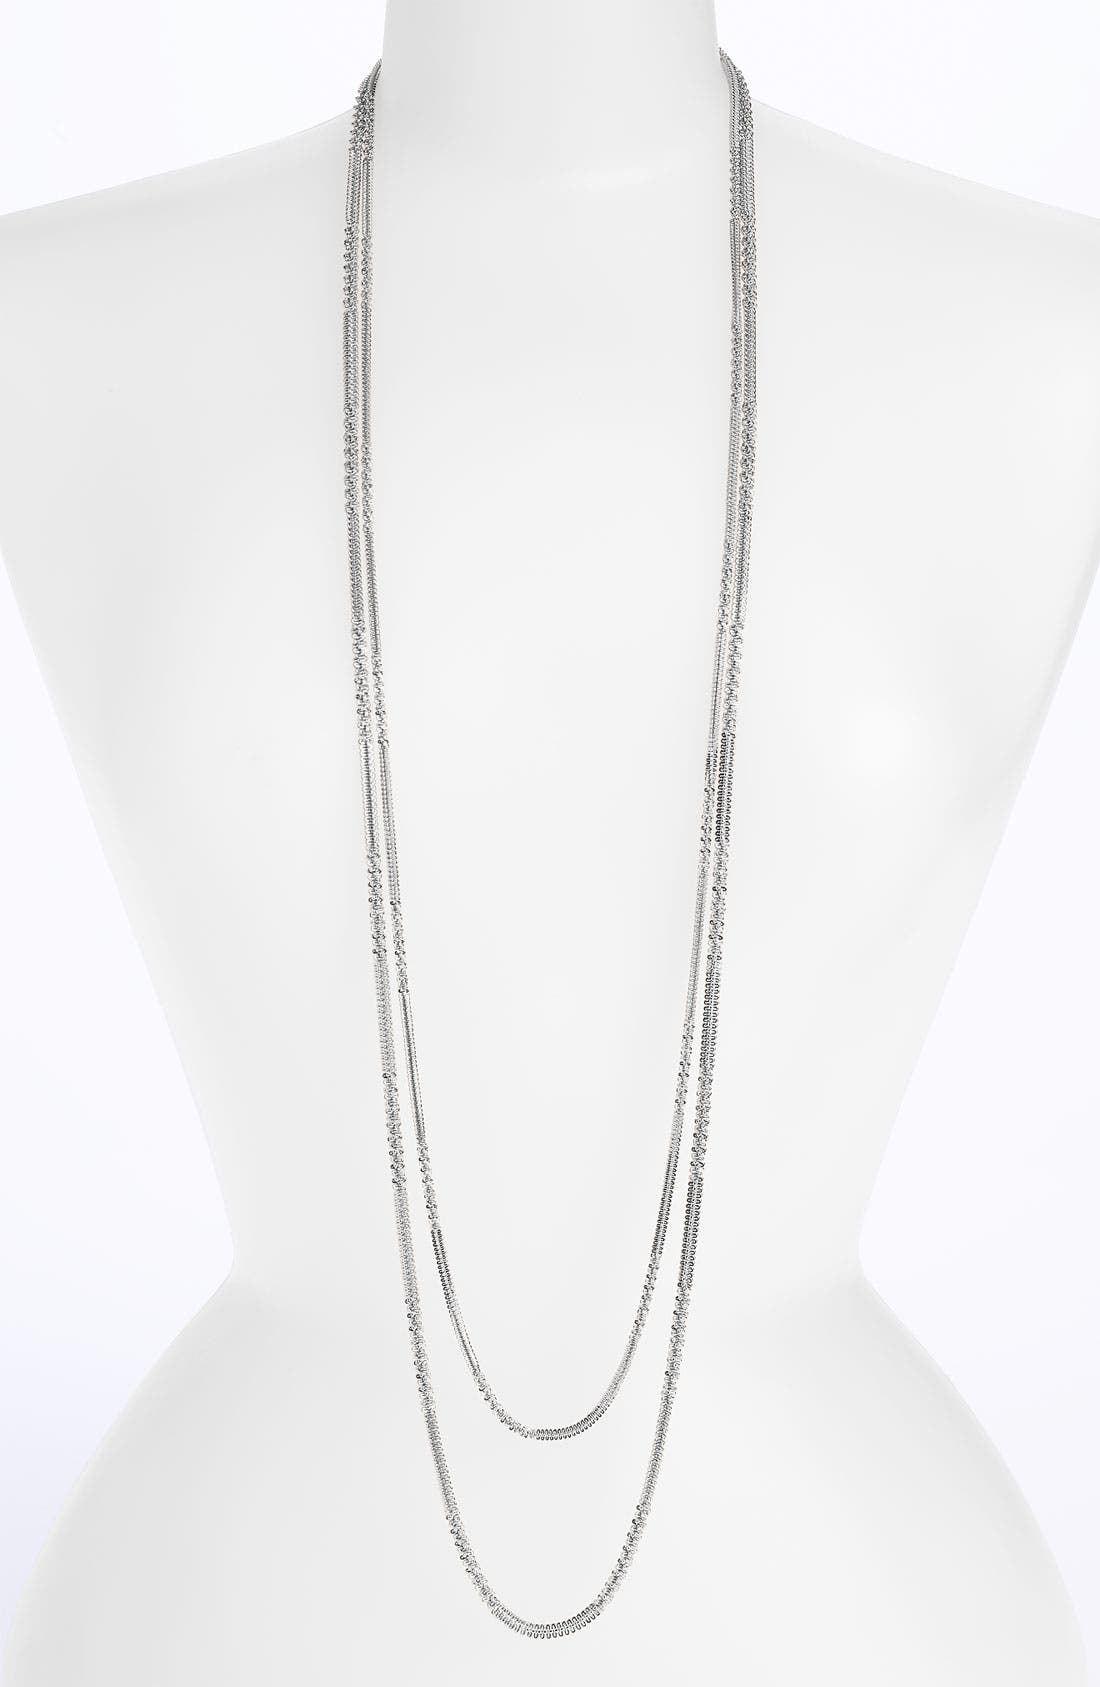 Alternate Image 1 Selected - Natasha Couture Double Strand Layering Necklace